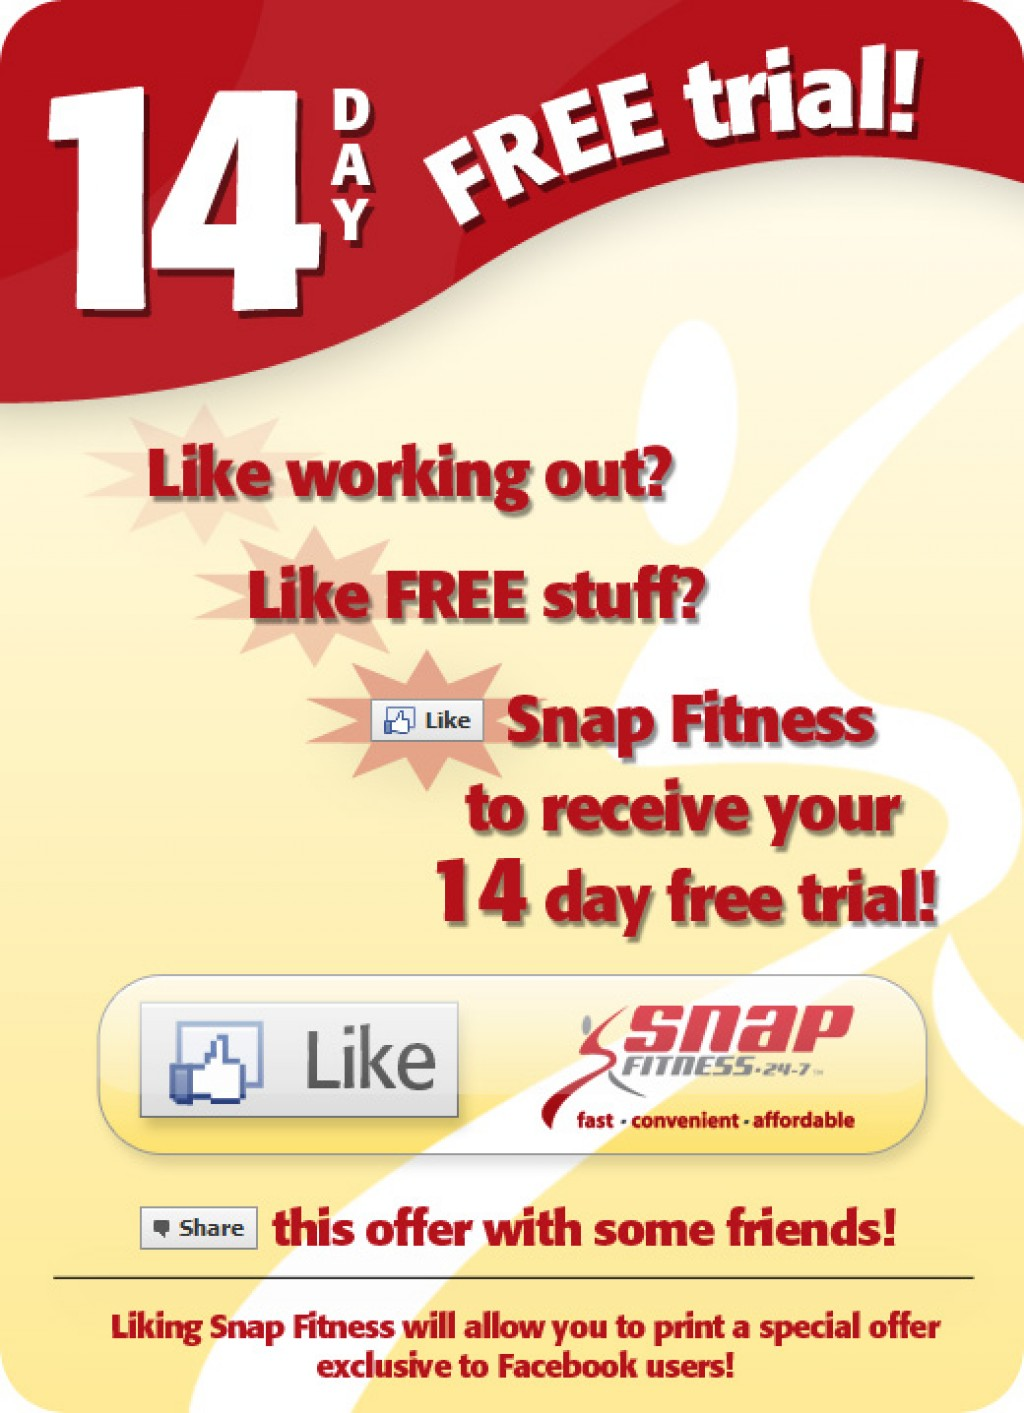 Snap Fitness Free Trial : fitness, trial, Steals, Deals:, Fitness, Offers, 14-day, Trial, Louis, Post-Dispatch, Columnists, Stltoday.com